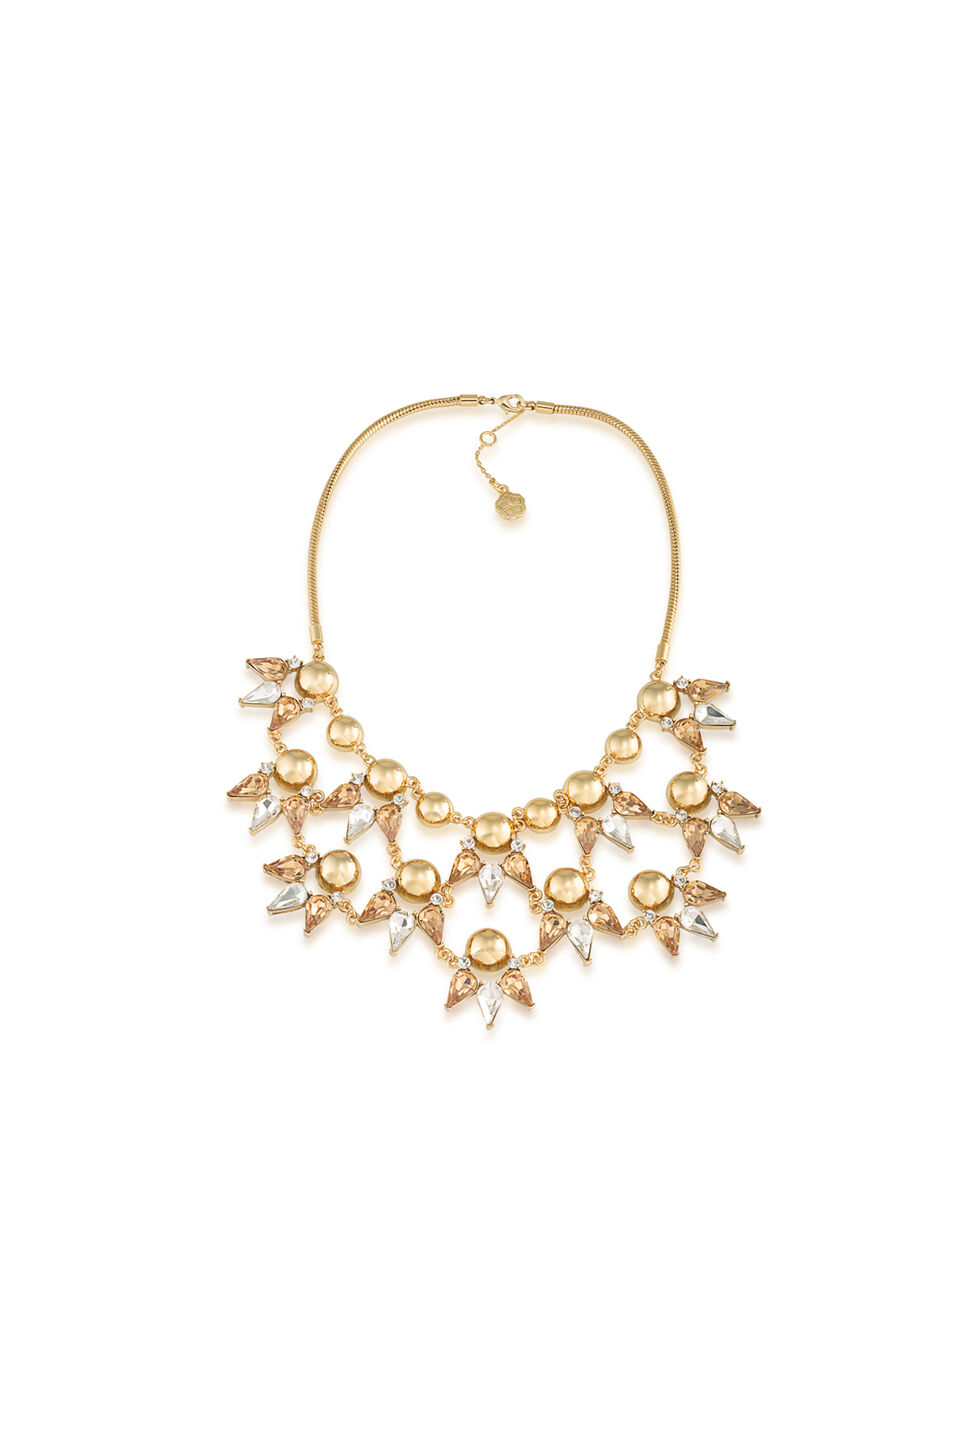 Trina Turk Starburst Drama Necklace - Gold - Size O/S